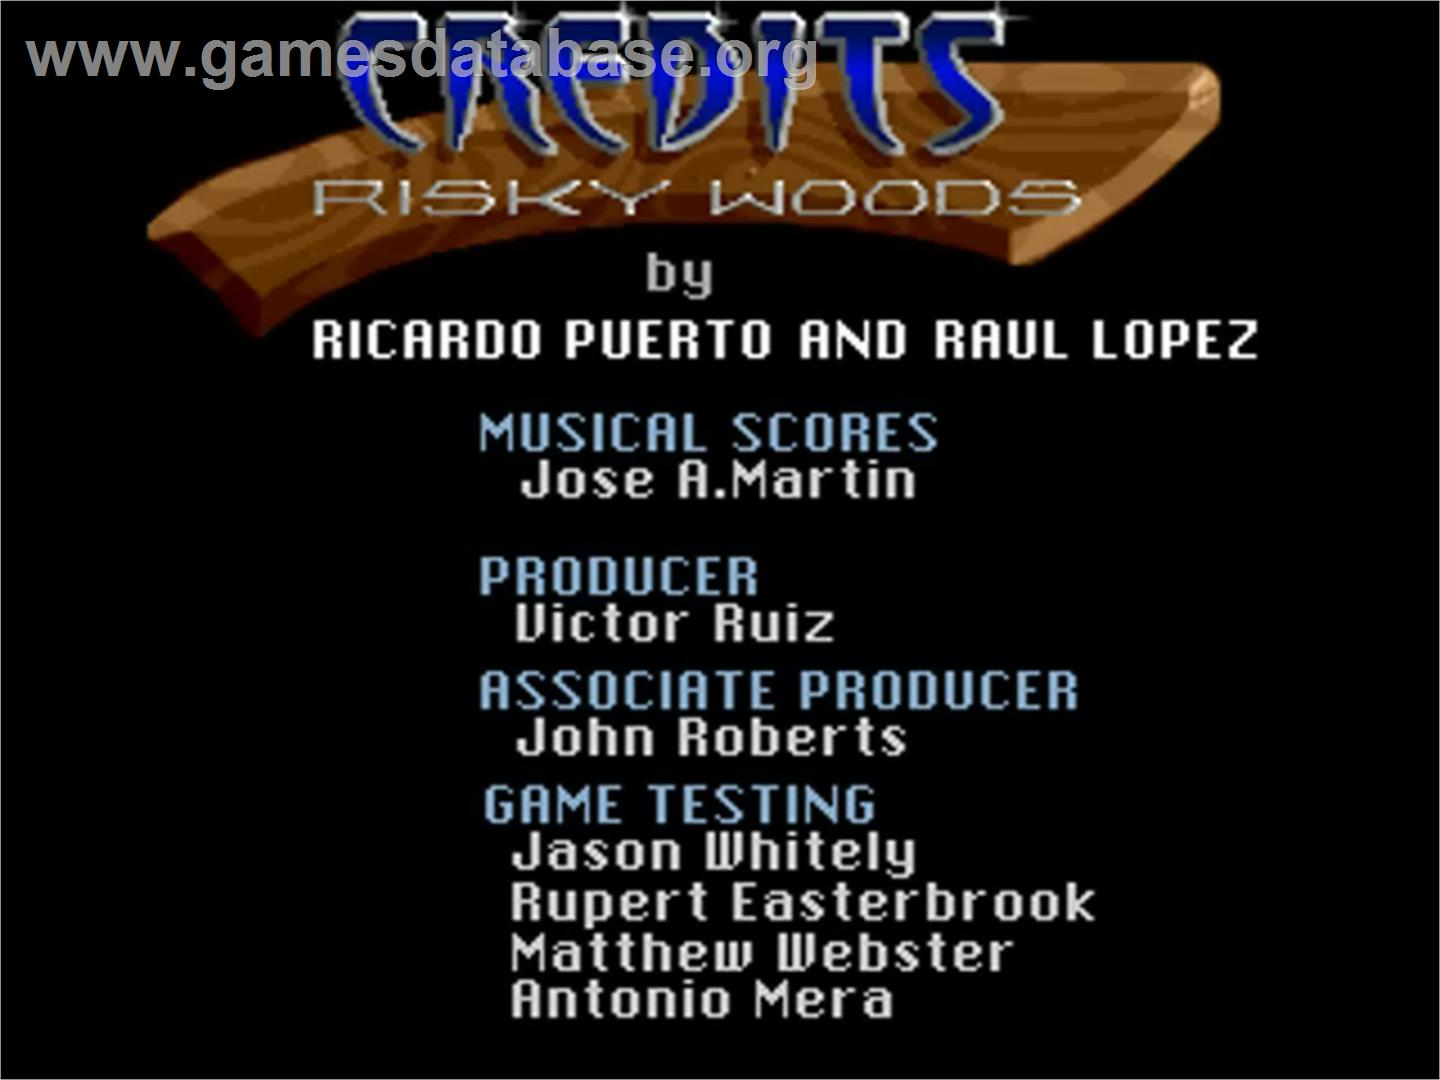 Risky Woods - Commodore Amiga - Artwork - Title Screen